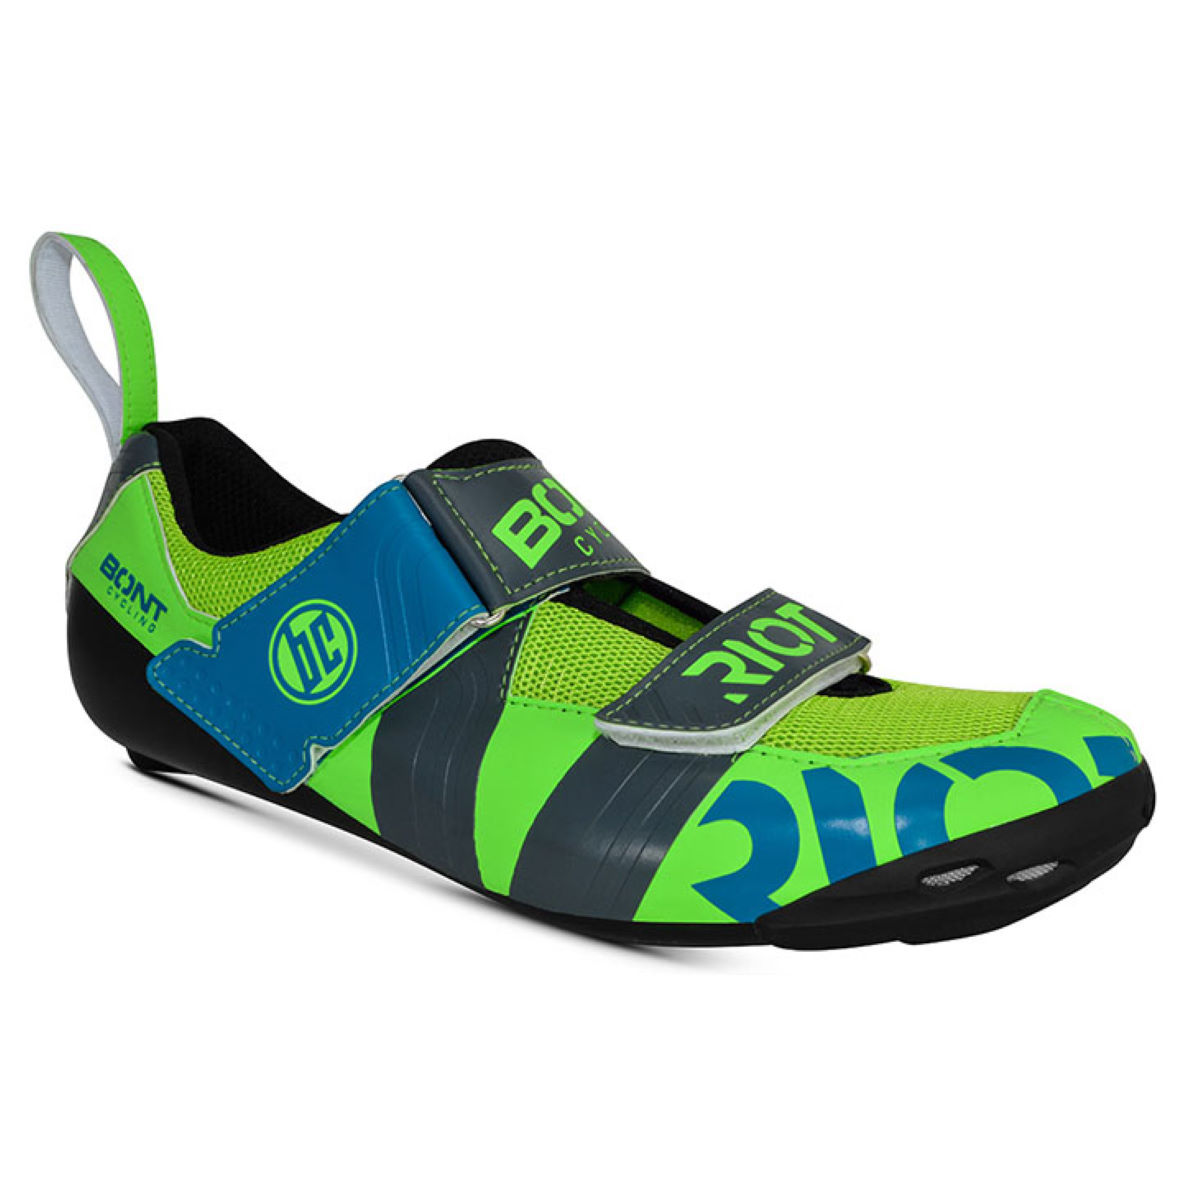 Chaussures de triathlon Bont Riot TR+ - EU 45 Lime/Charcoal